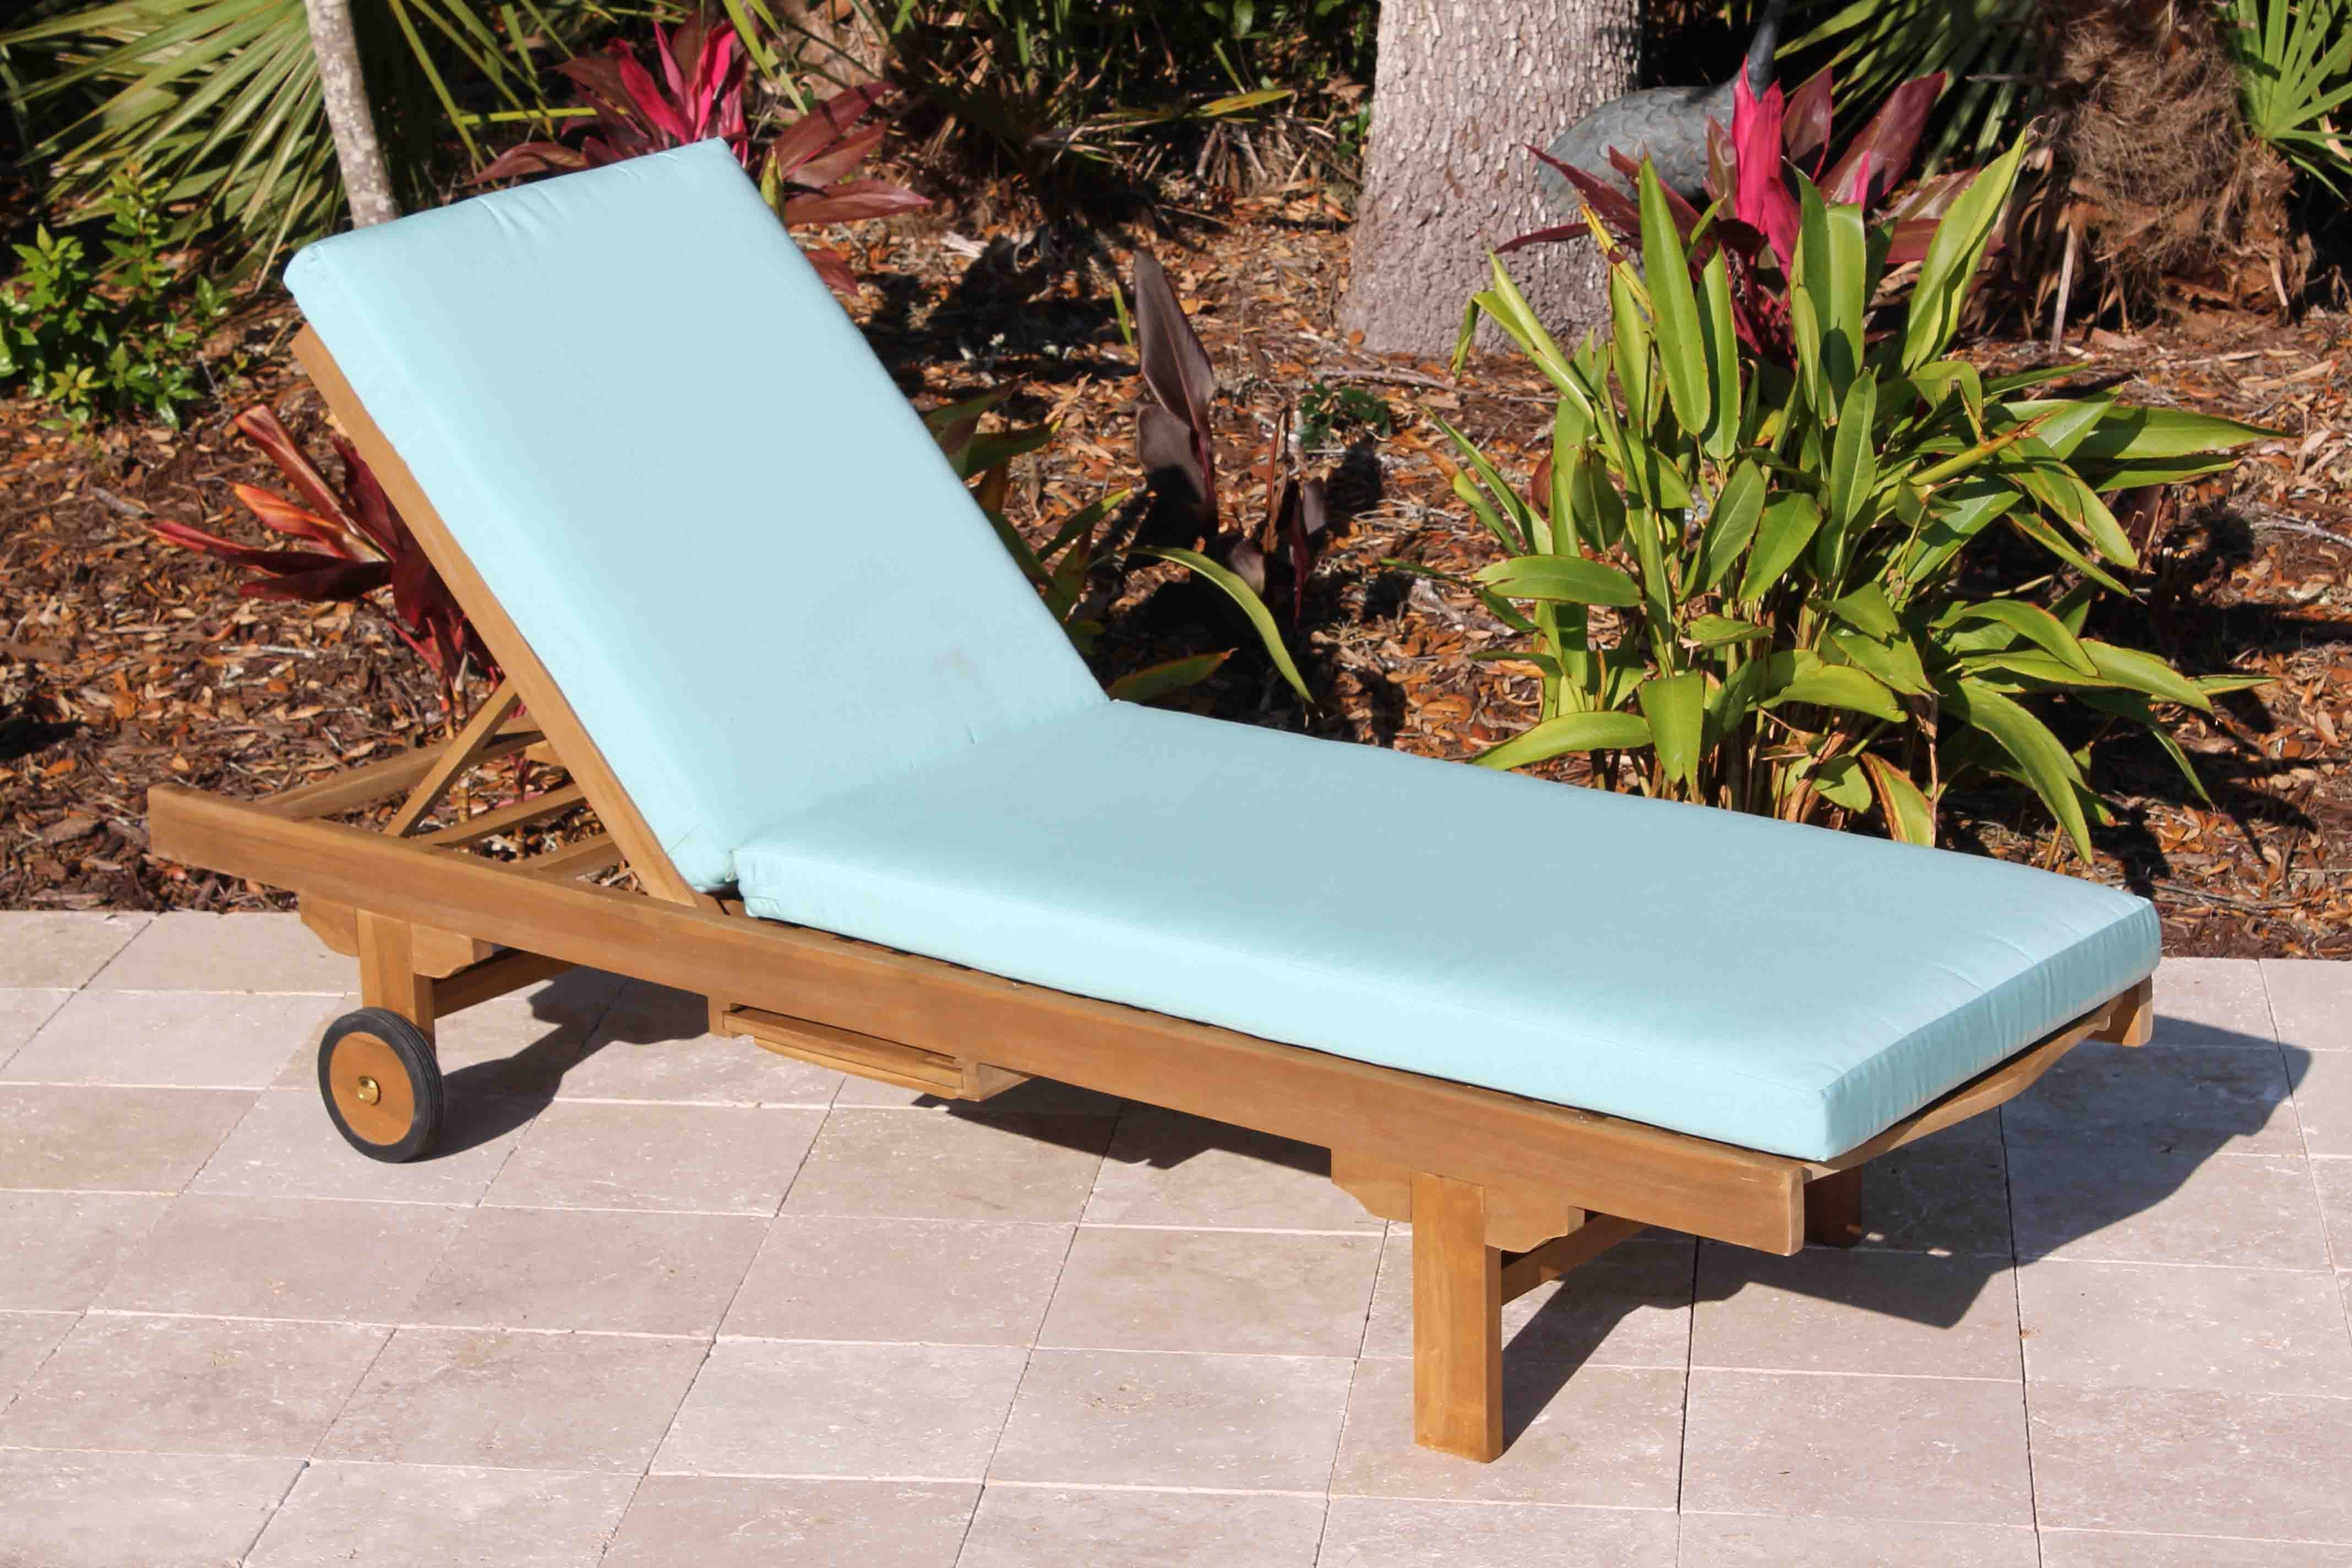 Teak Chaise Lounges Intended For Most Recently Released Sale Sunbrella Fabric Chaise Lounge Cushion (View 12 of 15)